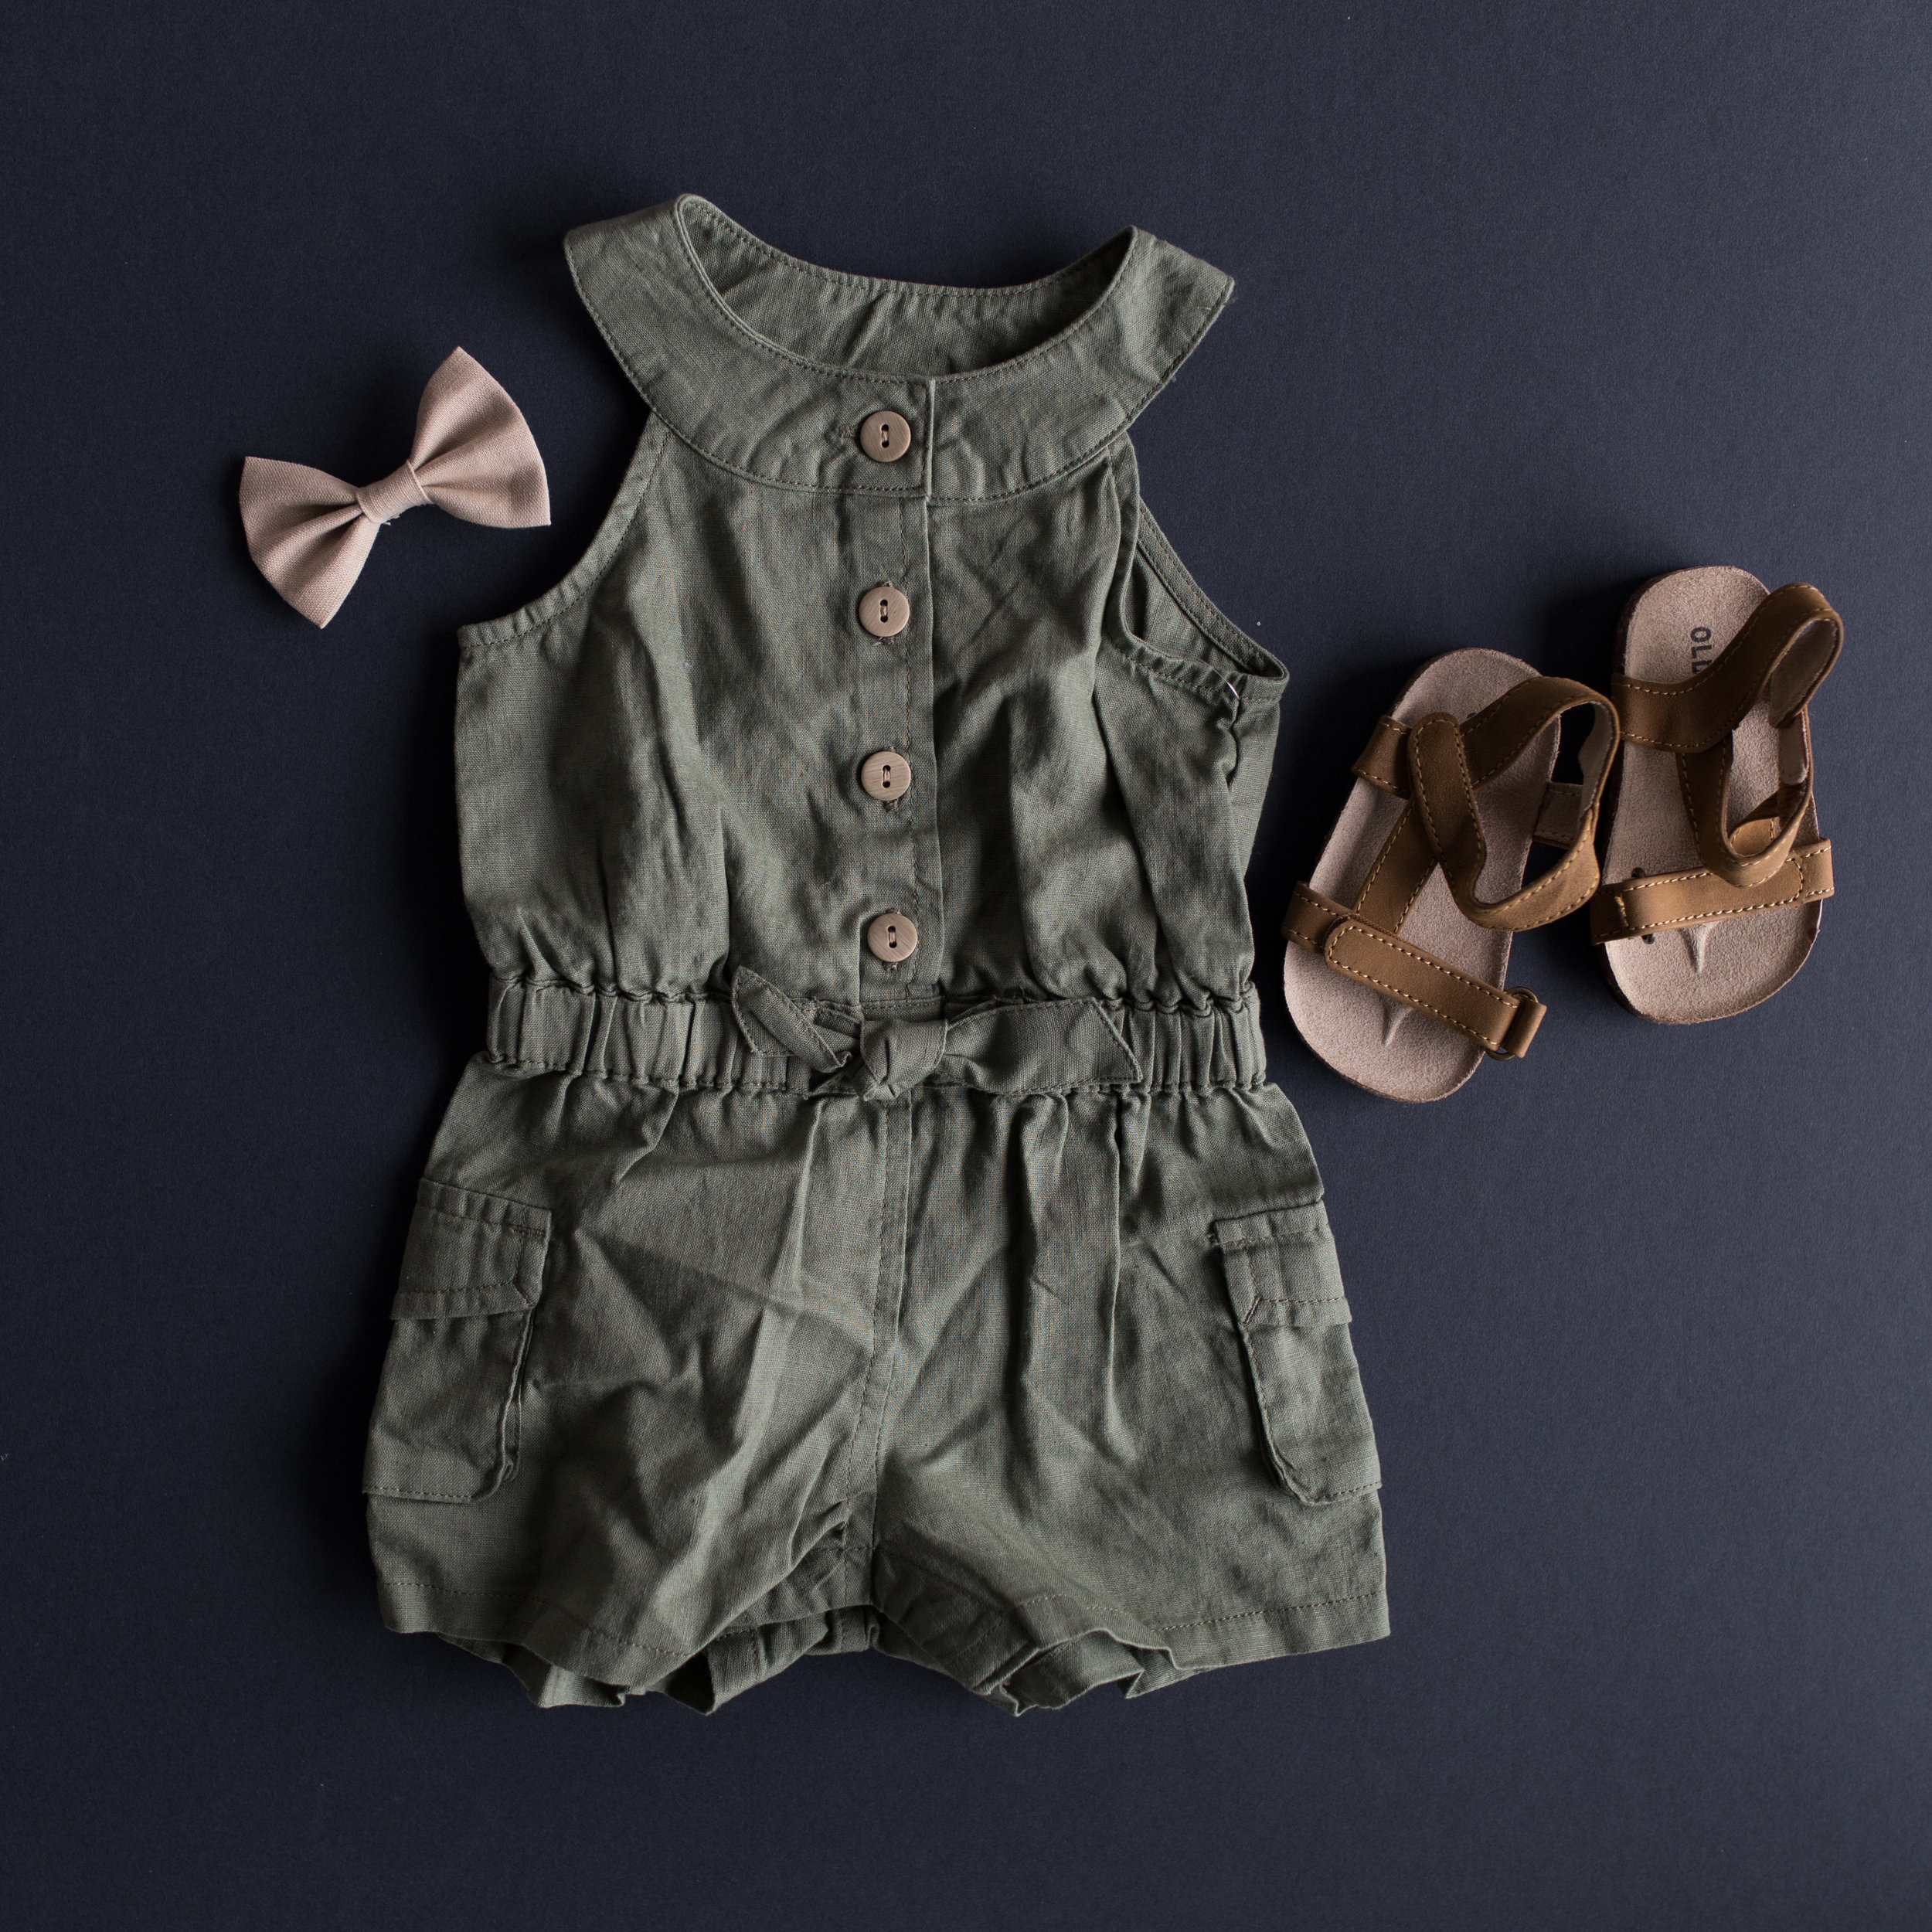 Cutest olive utility romper $19.94 and sandals $10.35 both from Old Navy!   http://oldnavy.gap.com/browse/product.do?cid=1076945&pcid=6269&vid=1&pid=613895002